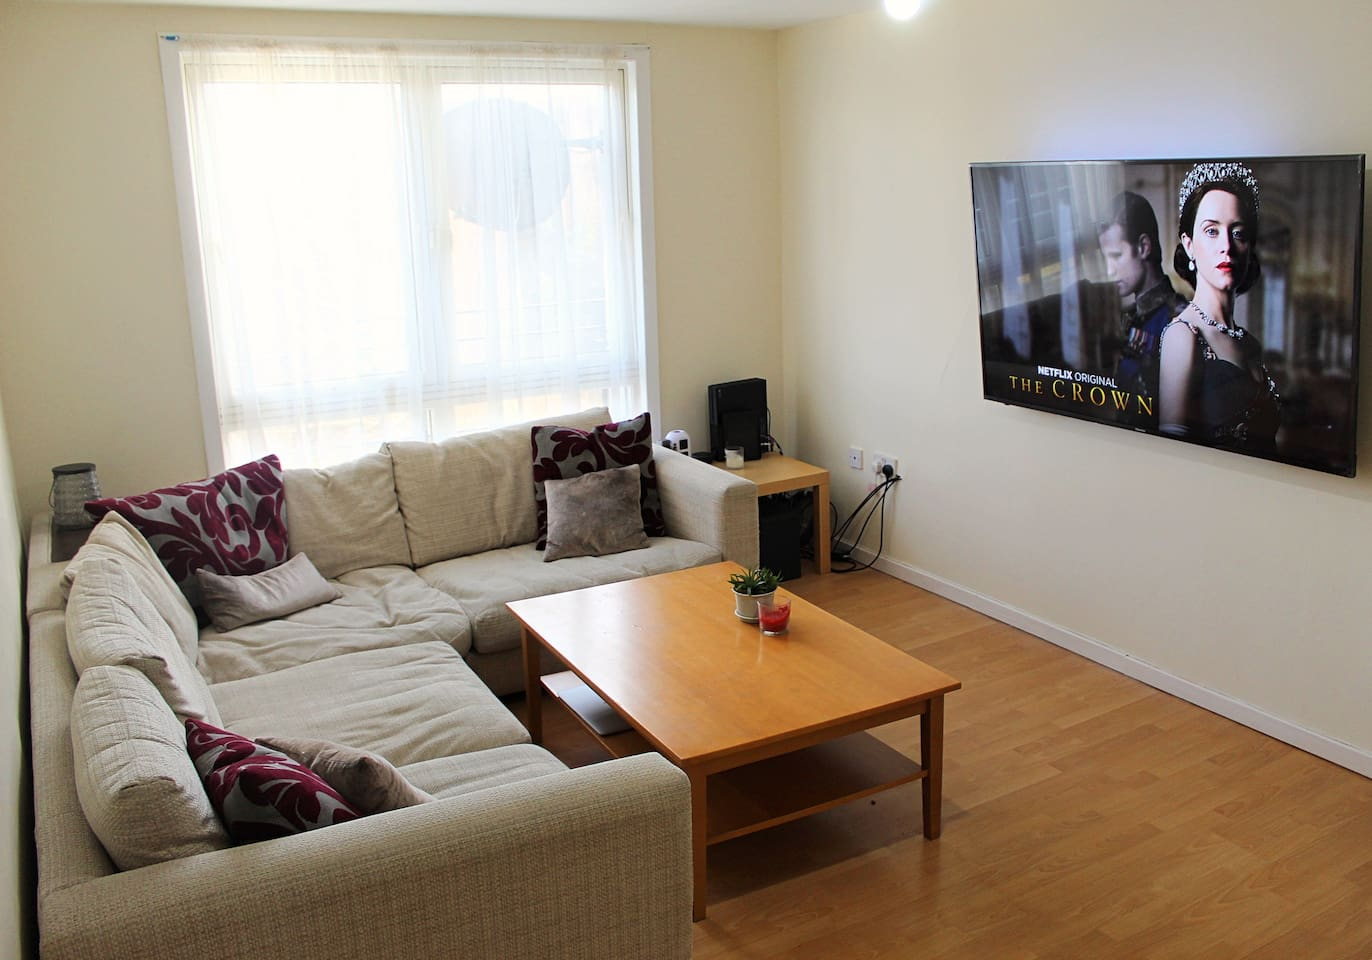 Clean and spacious living room that overlooks the pentland hills in the distance.